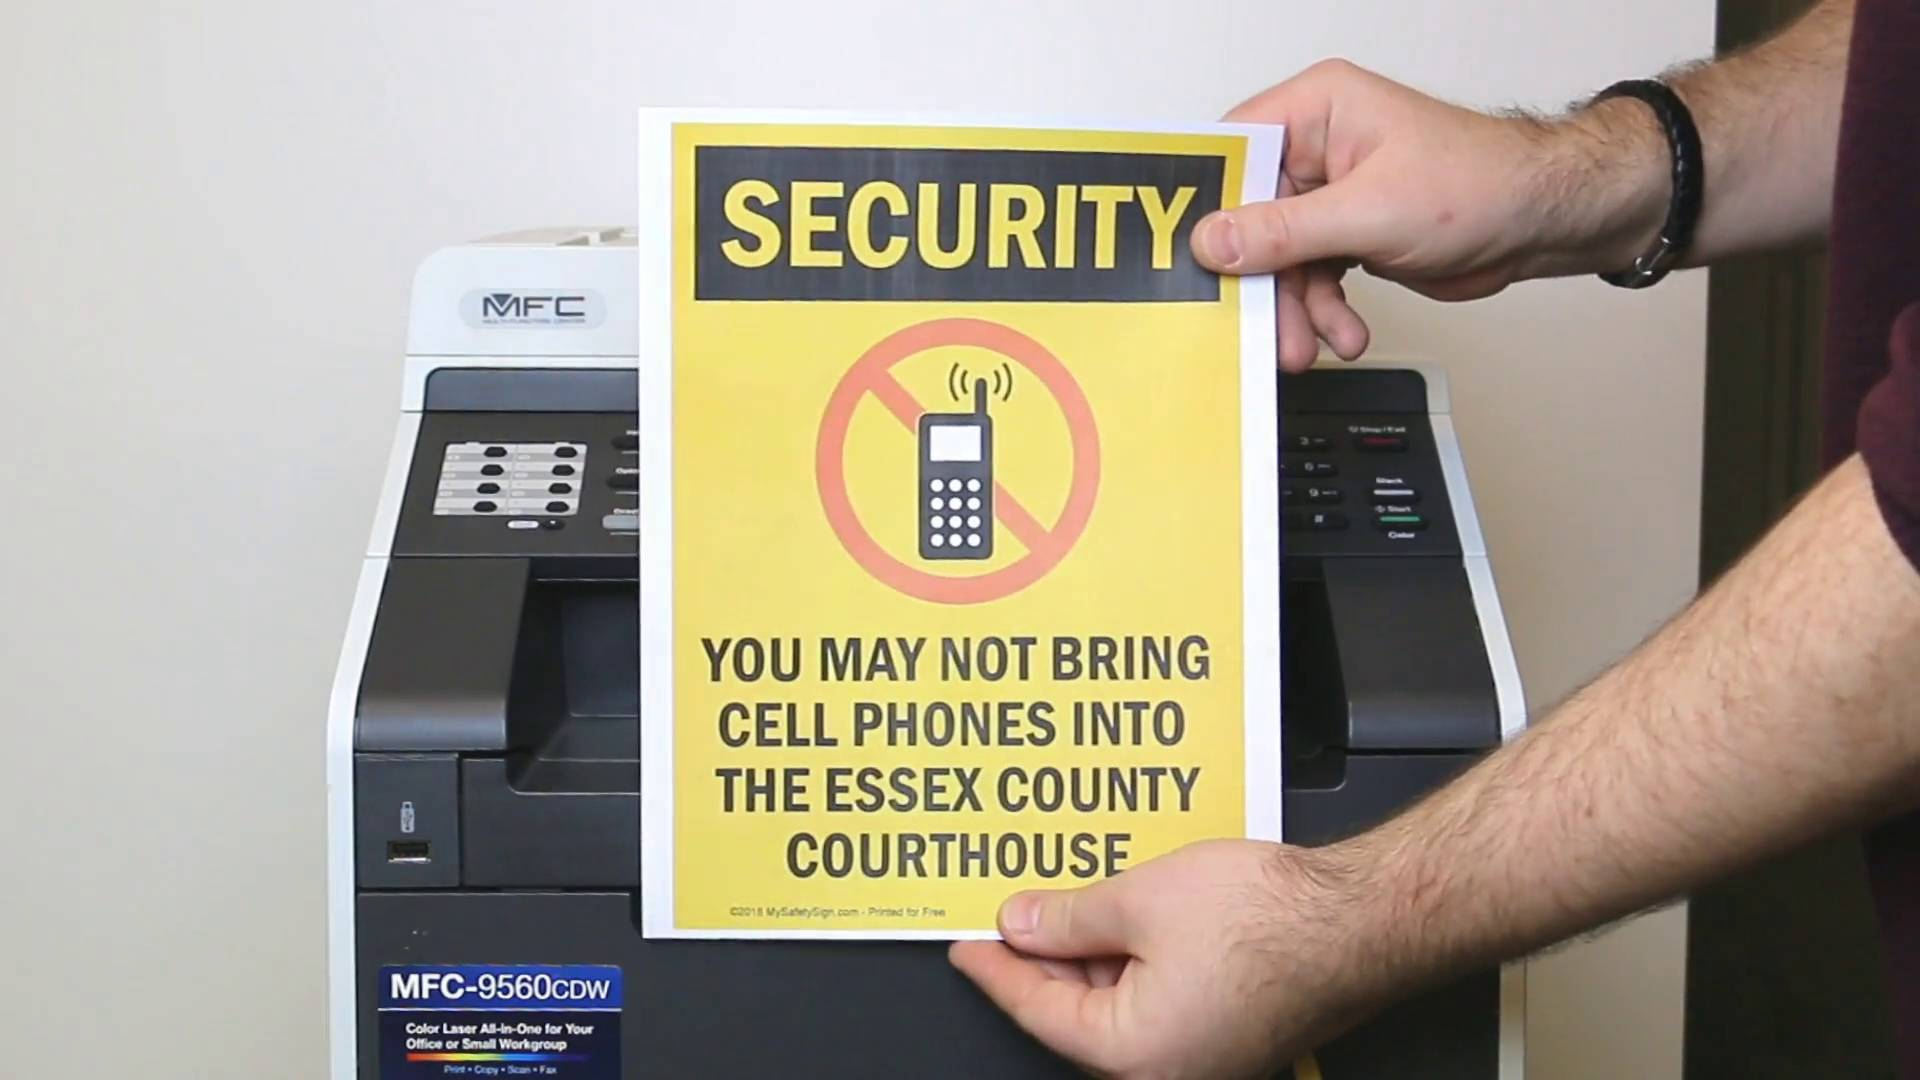 Free Security, Cctv And No Trespassing Signs - Printable Video Surveillance Signs Free